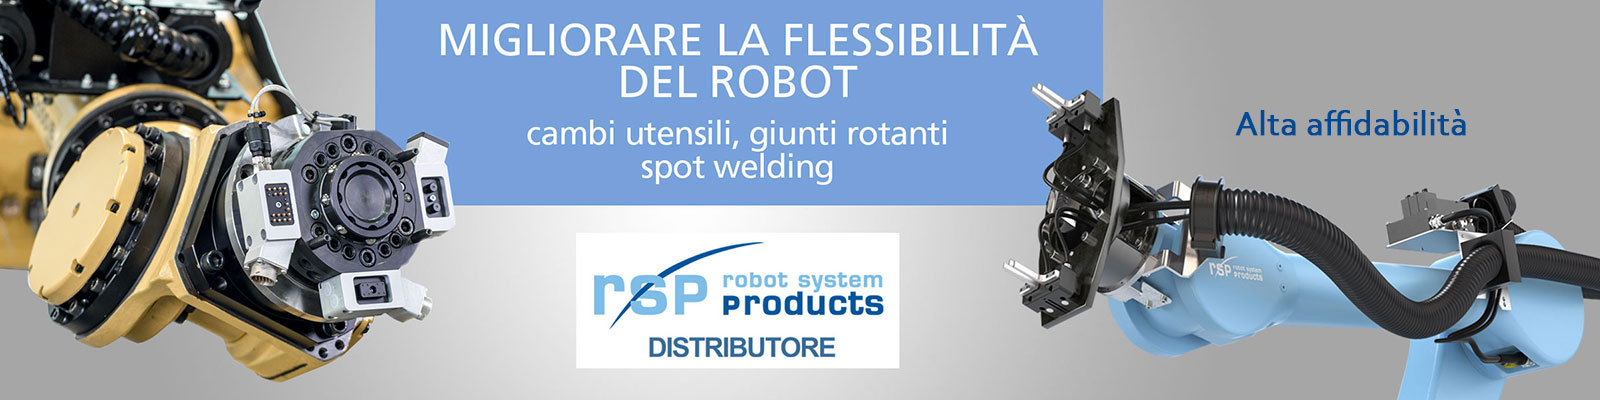 Omil Rsp robot system cambi utensili, giunti rotanti, spot welding